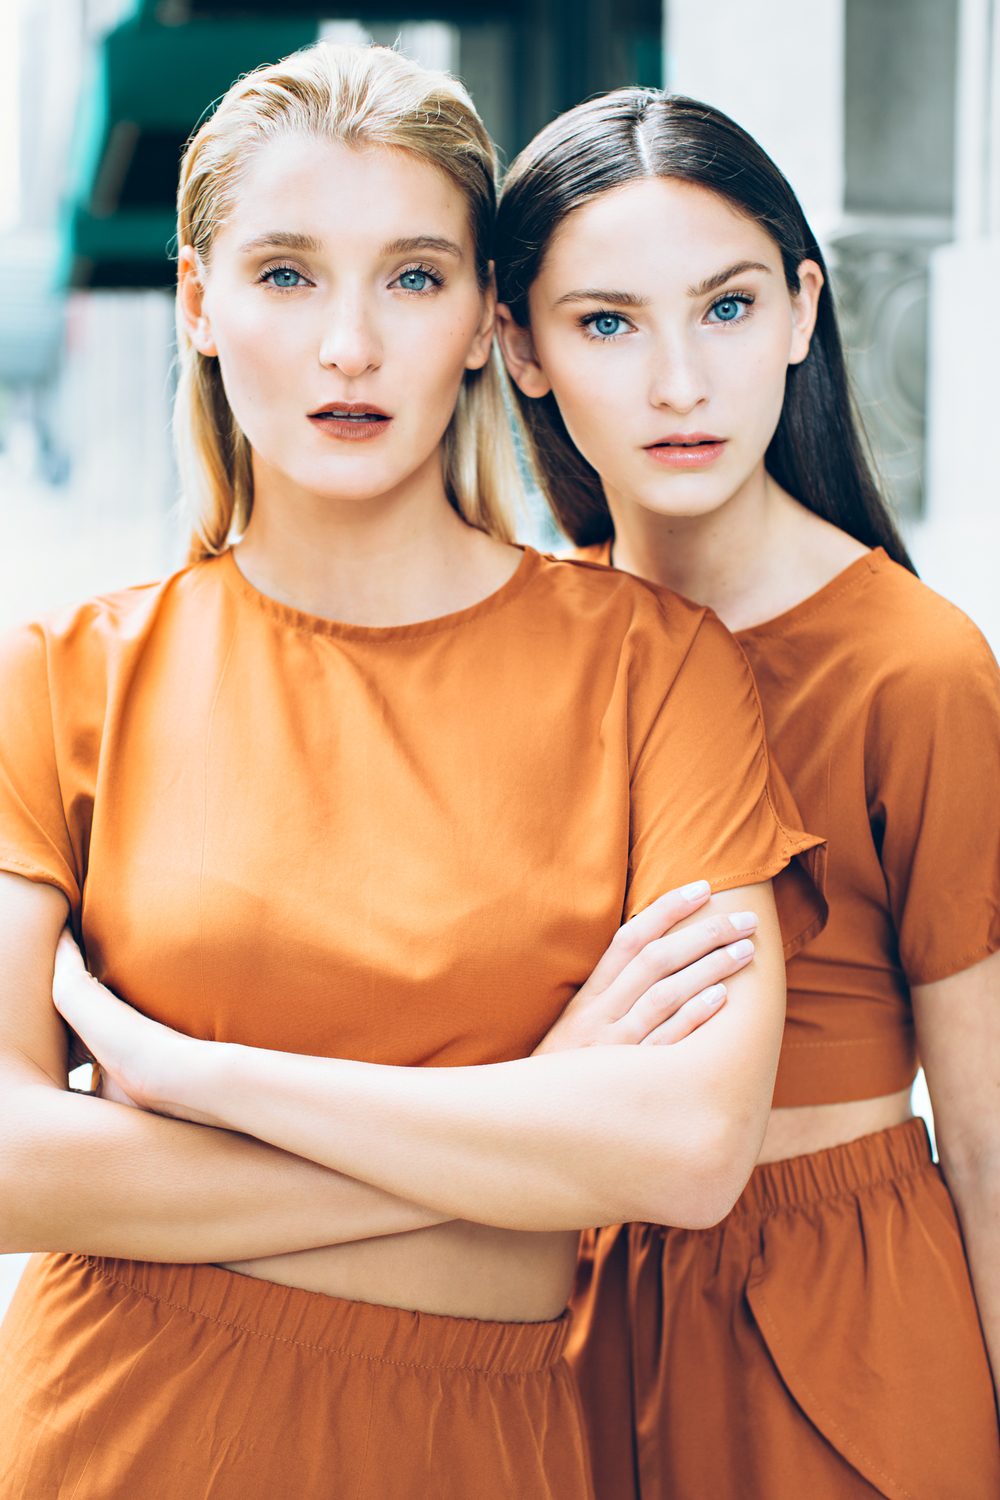 Featured on  The Social Life   Photographer |  Tanya Goehring  Photographer Assistant | Raymond Fryer Stylist |  Ghazal Elhaei  Stylist Assistant | Alex Grace Hair |  Jade Kugelman  Make-Up | Katie Elwood Models | Frederique and Alex of  Lizbell Agency